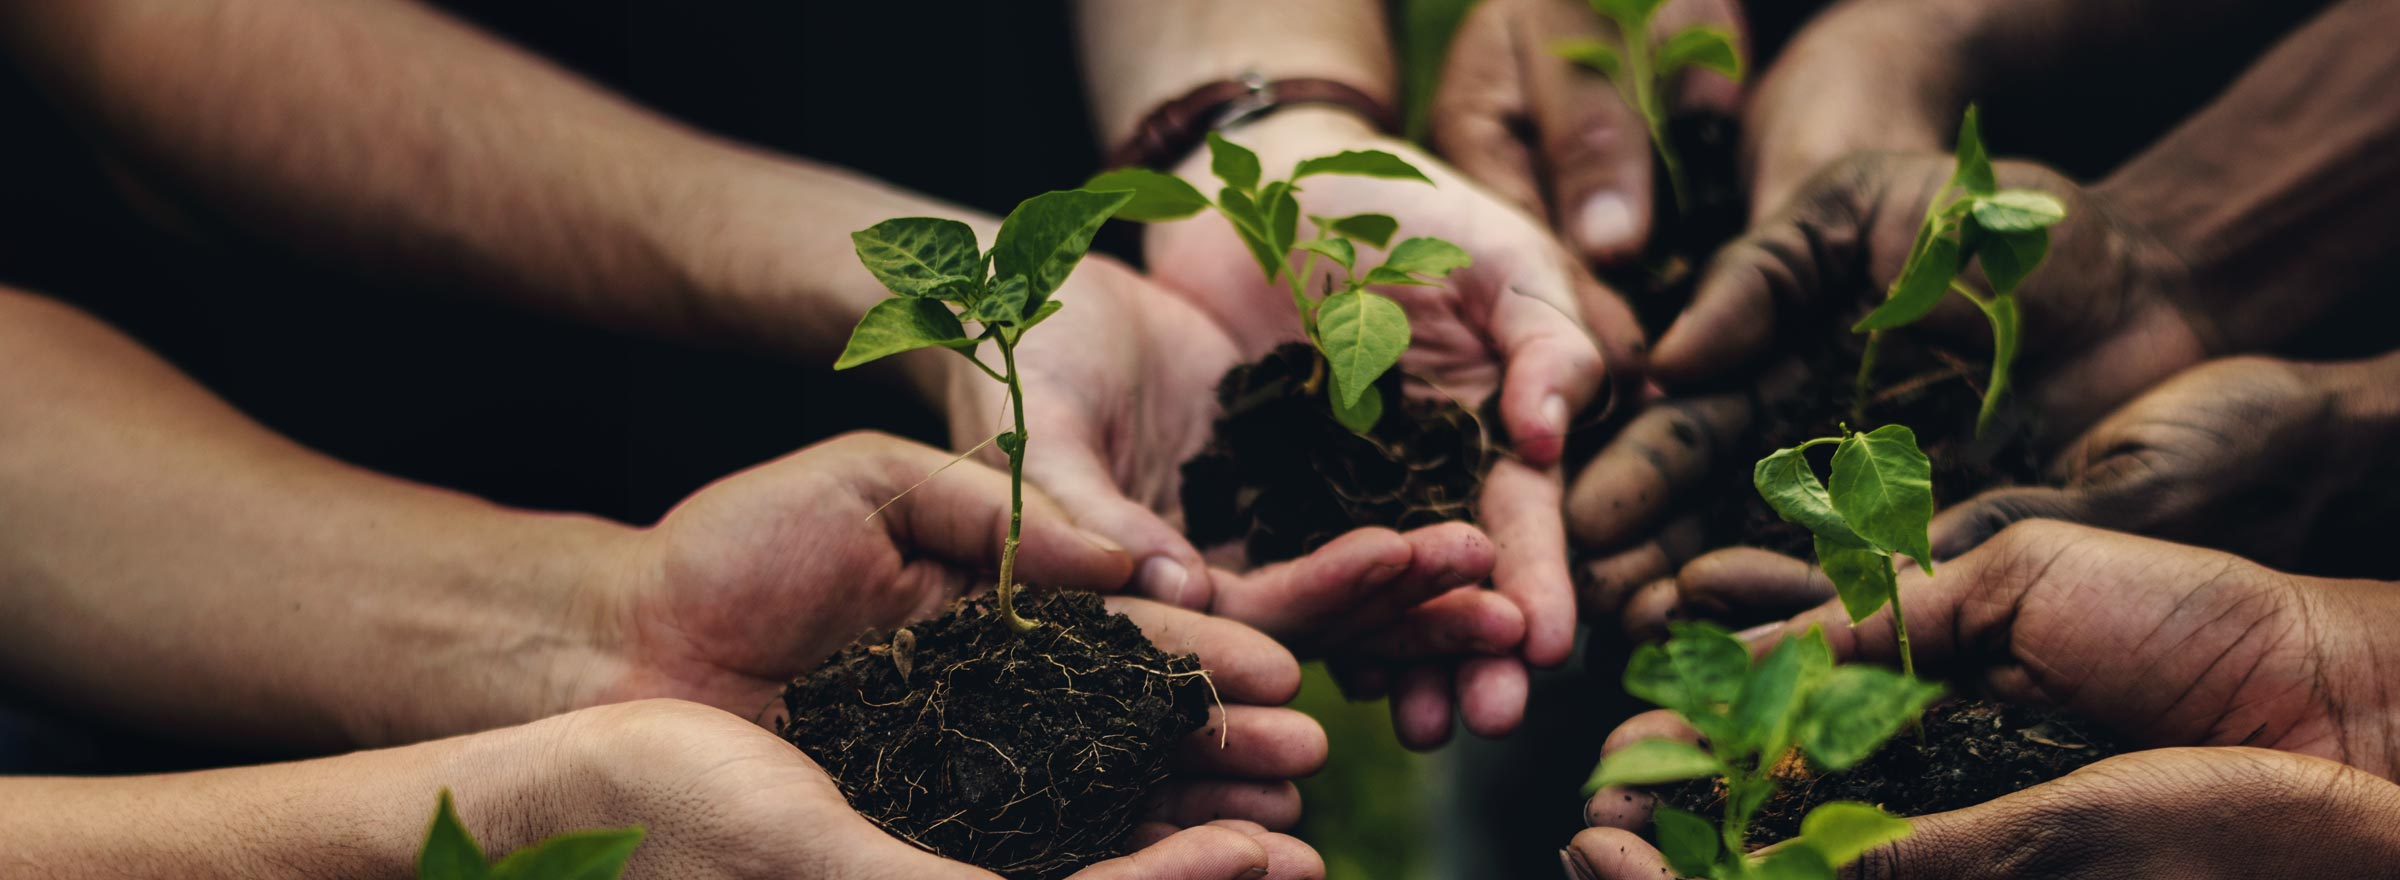 Multiple hands holding seedlings in balls of dirt